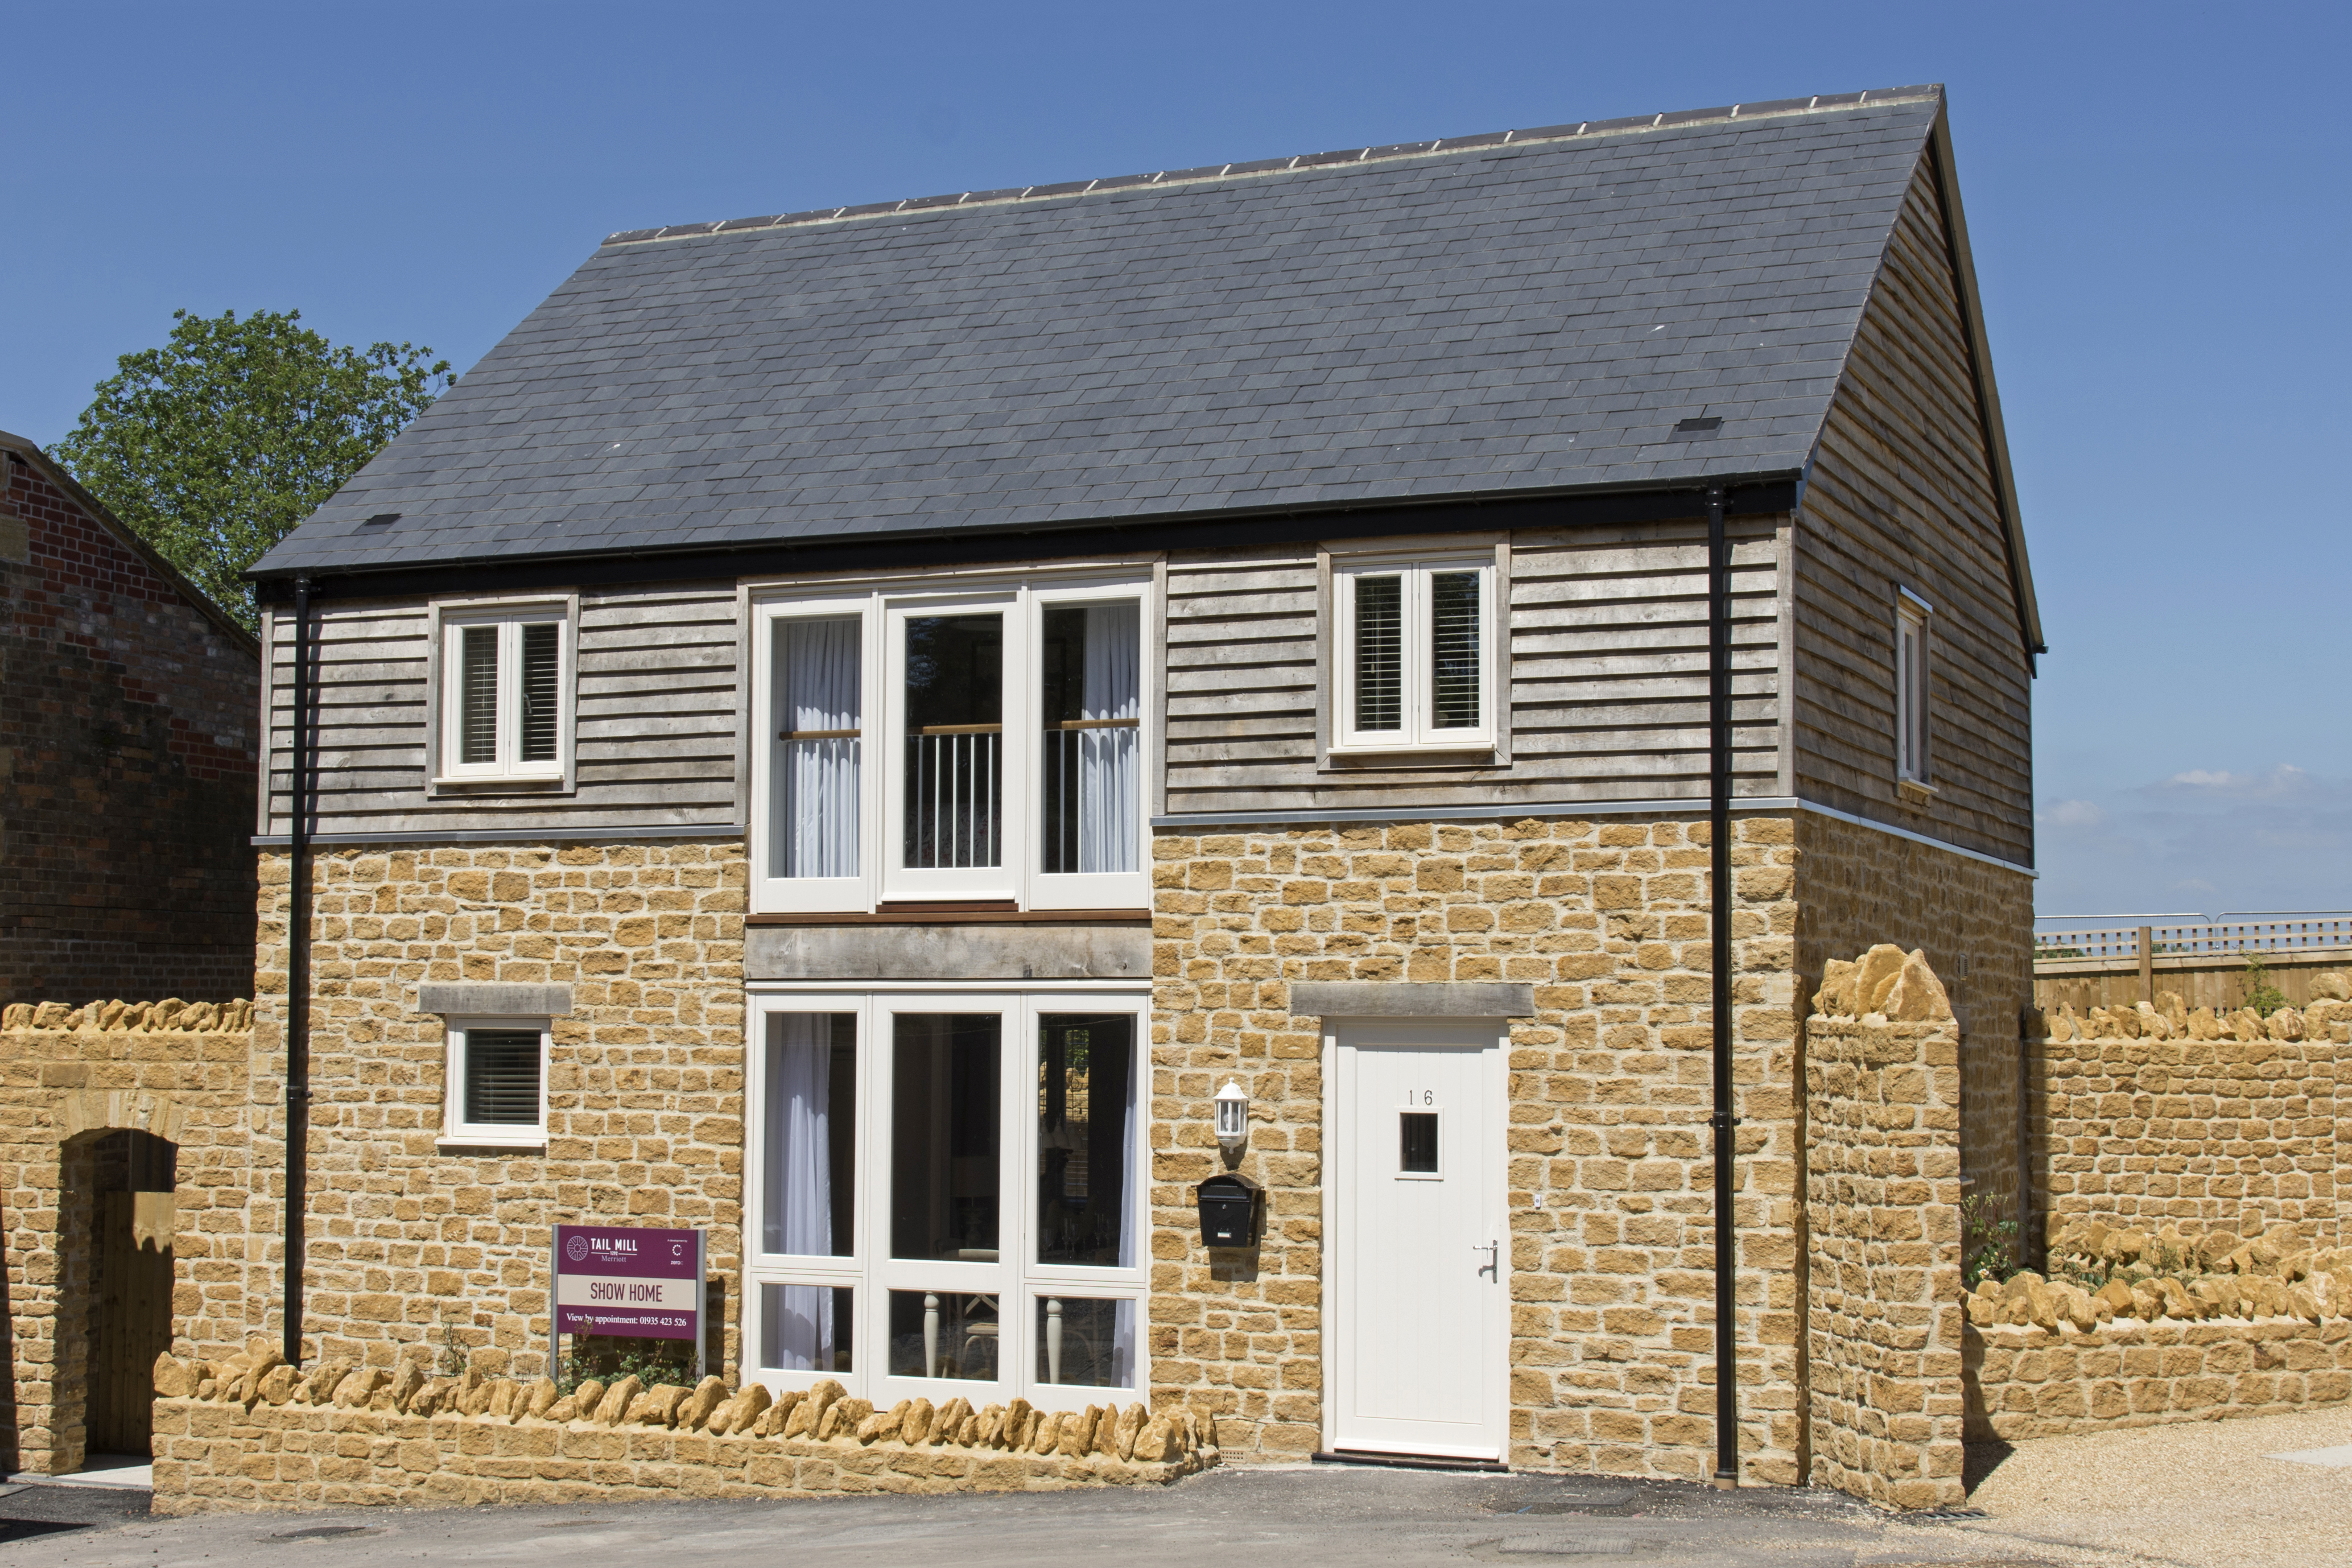 Tail Mill new-build housing, Merriott, Somerset - house with Ham stone and timber cladding